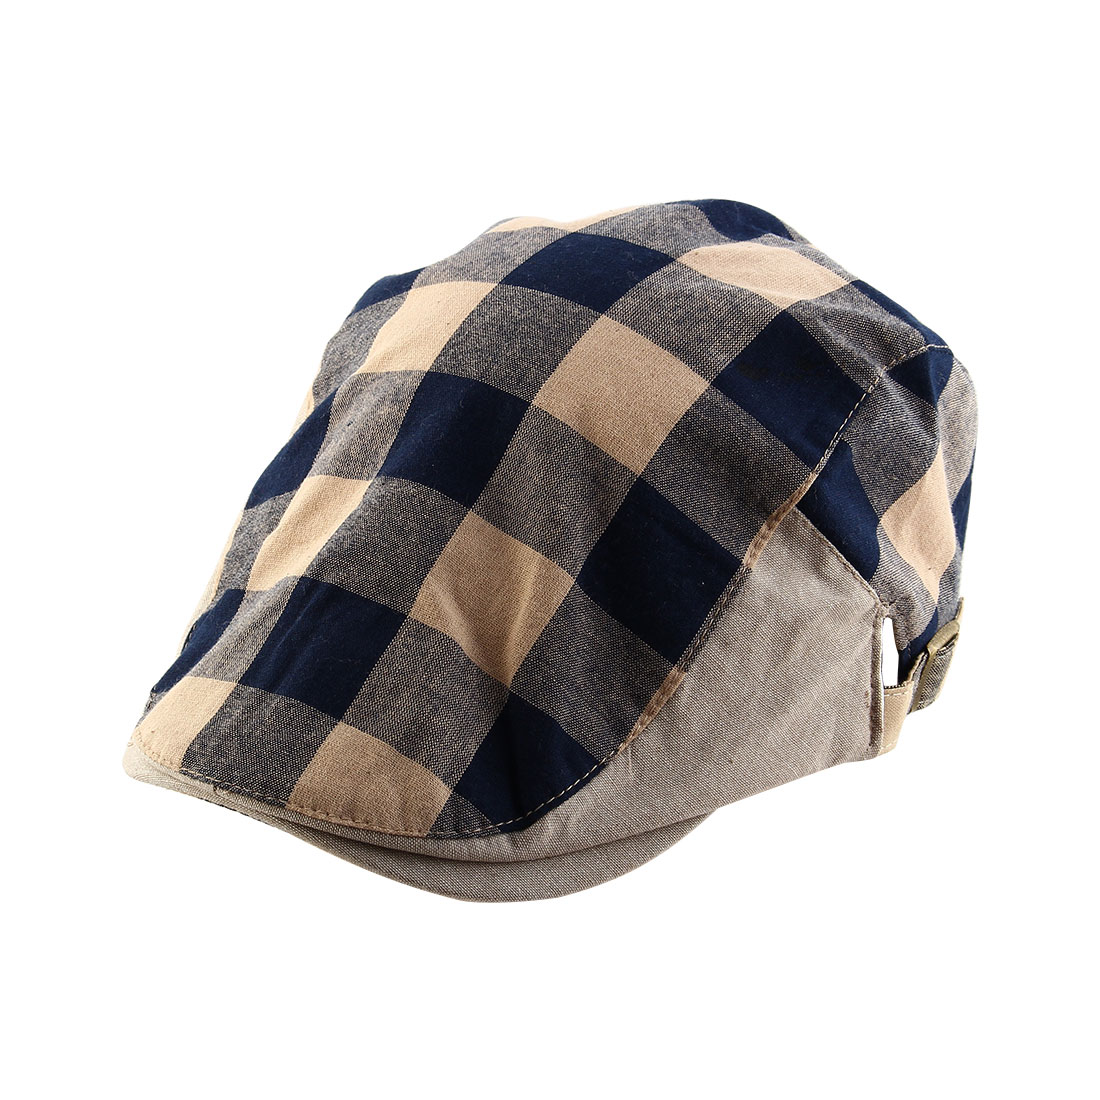 Men Women Plaid Pattern Summer Newsboy Ivy Cap Driving Flat ... 24004559c77